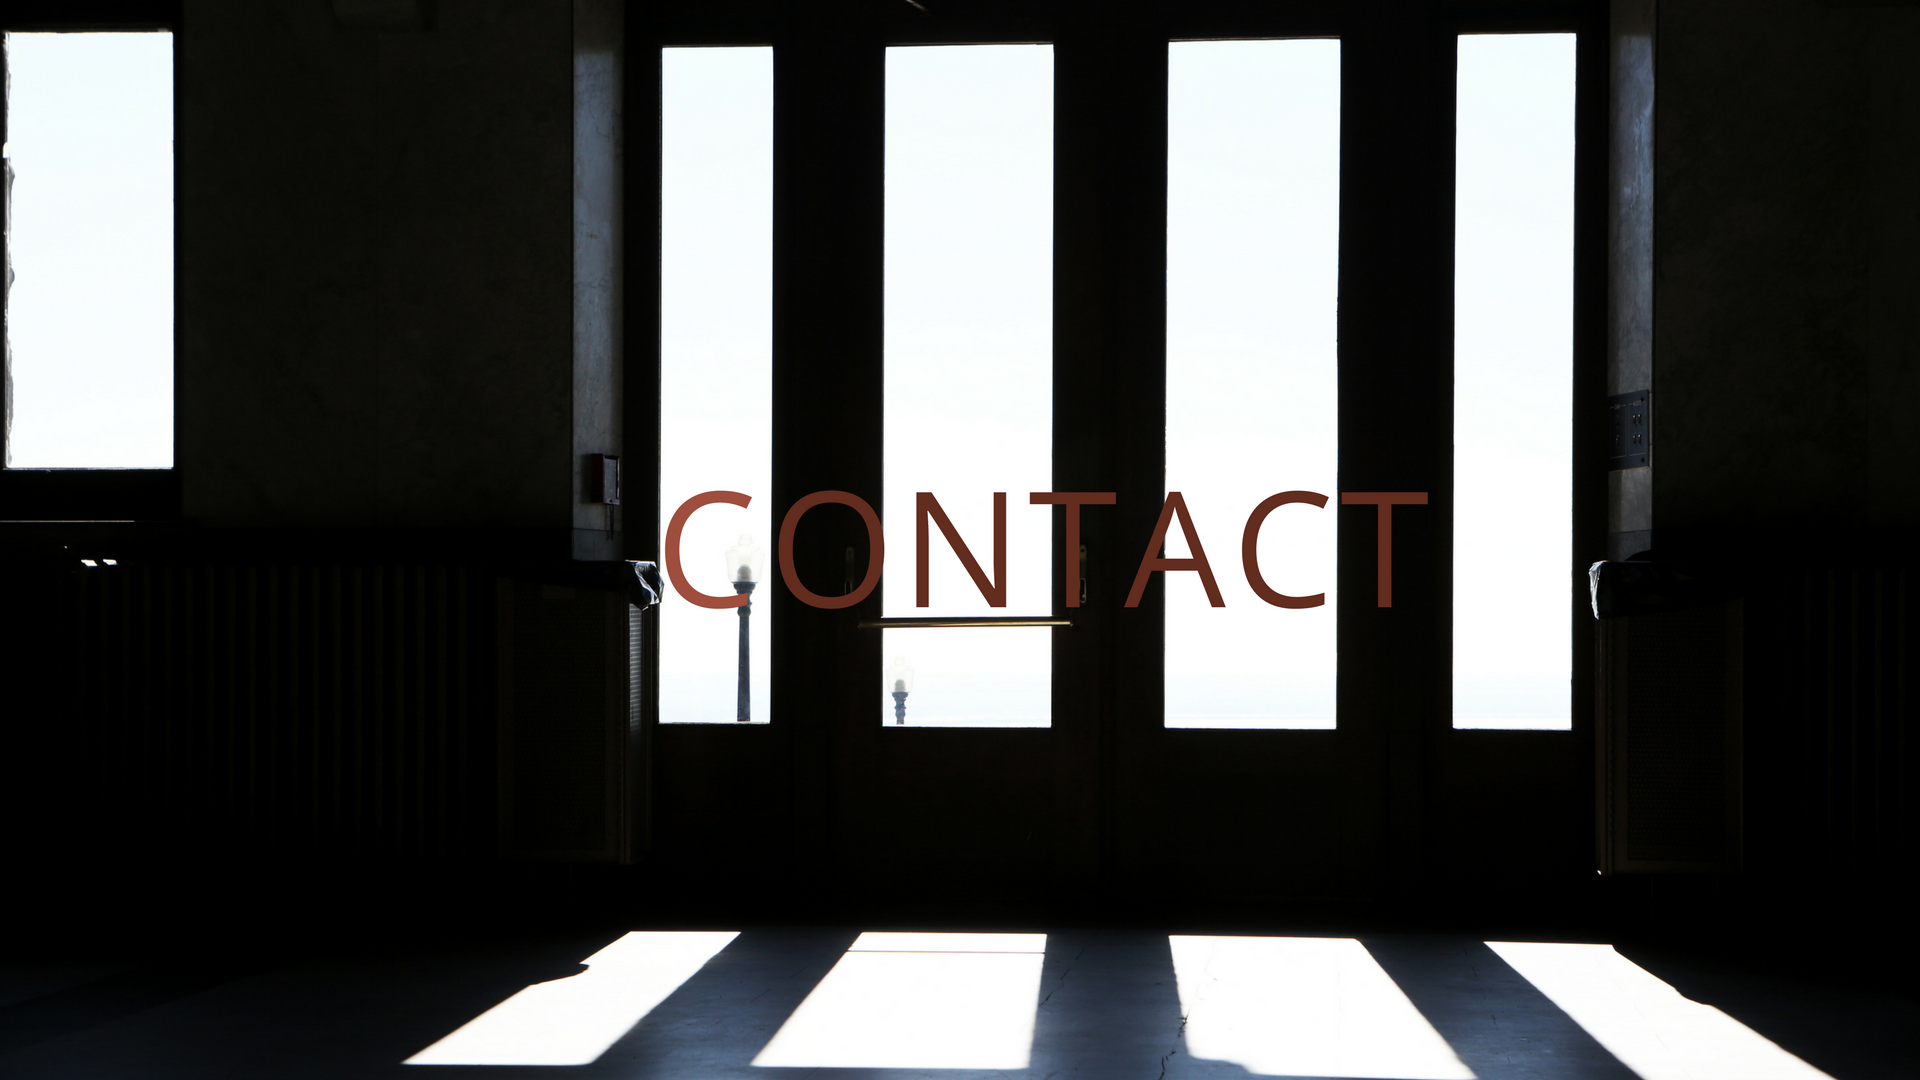 Contact-2.png